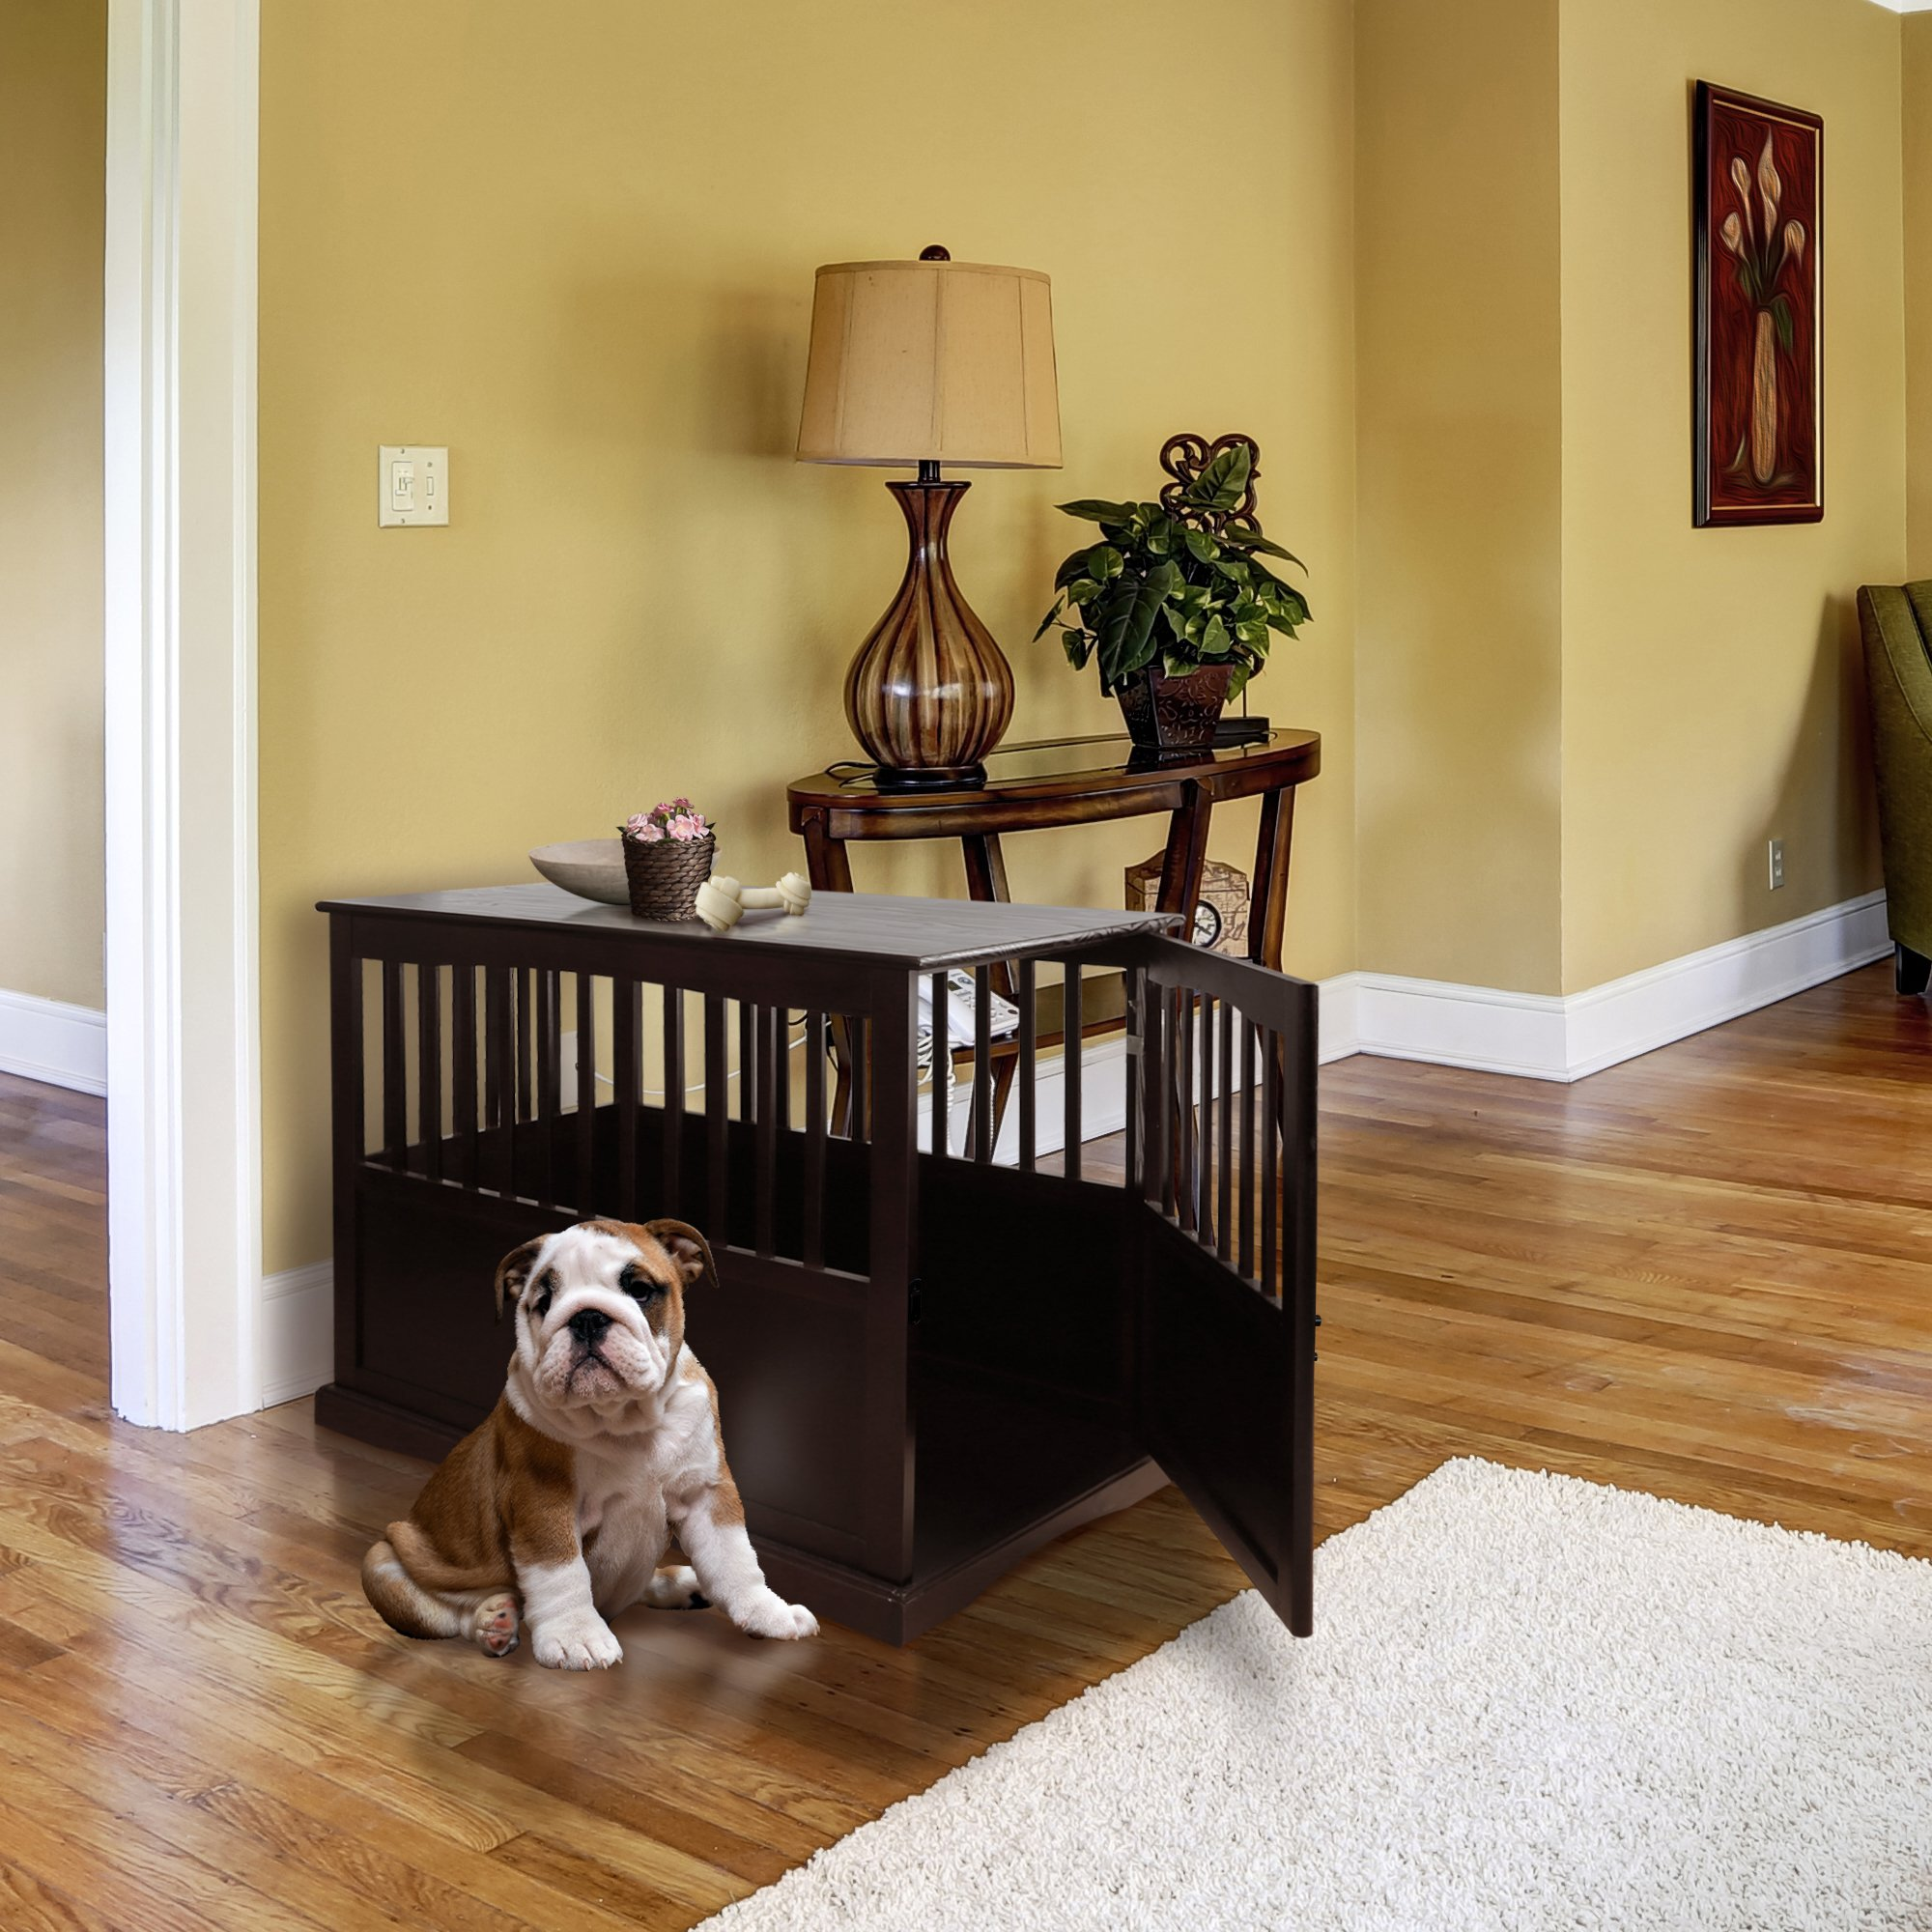 "Casual Home 600-24 Wooden Pet Crate, Espresso, 27"" H"